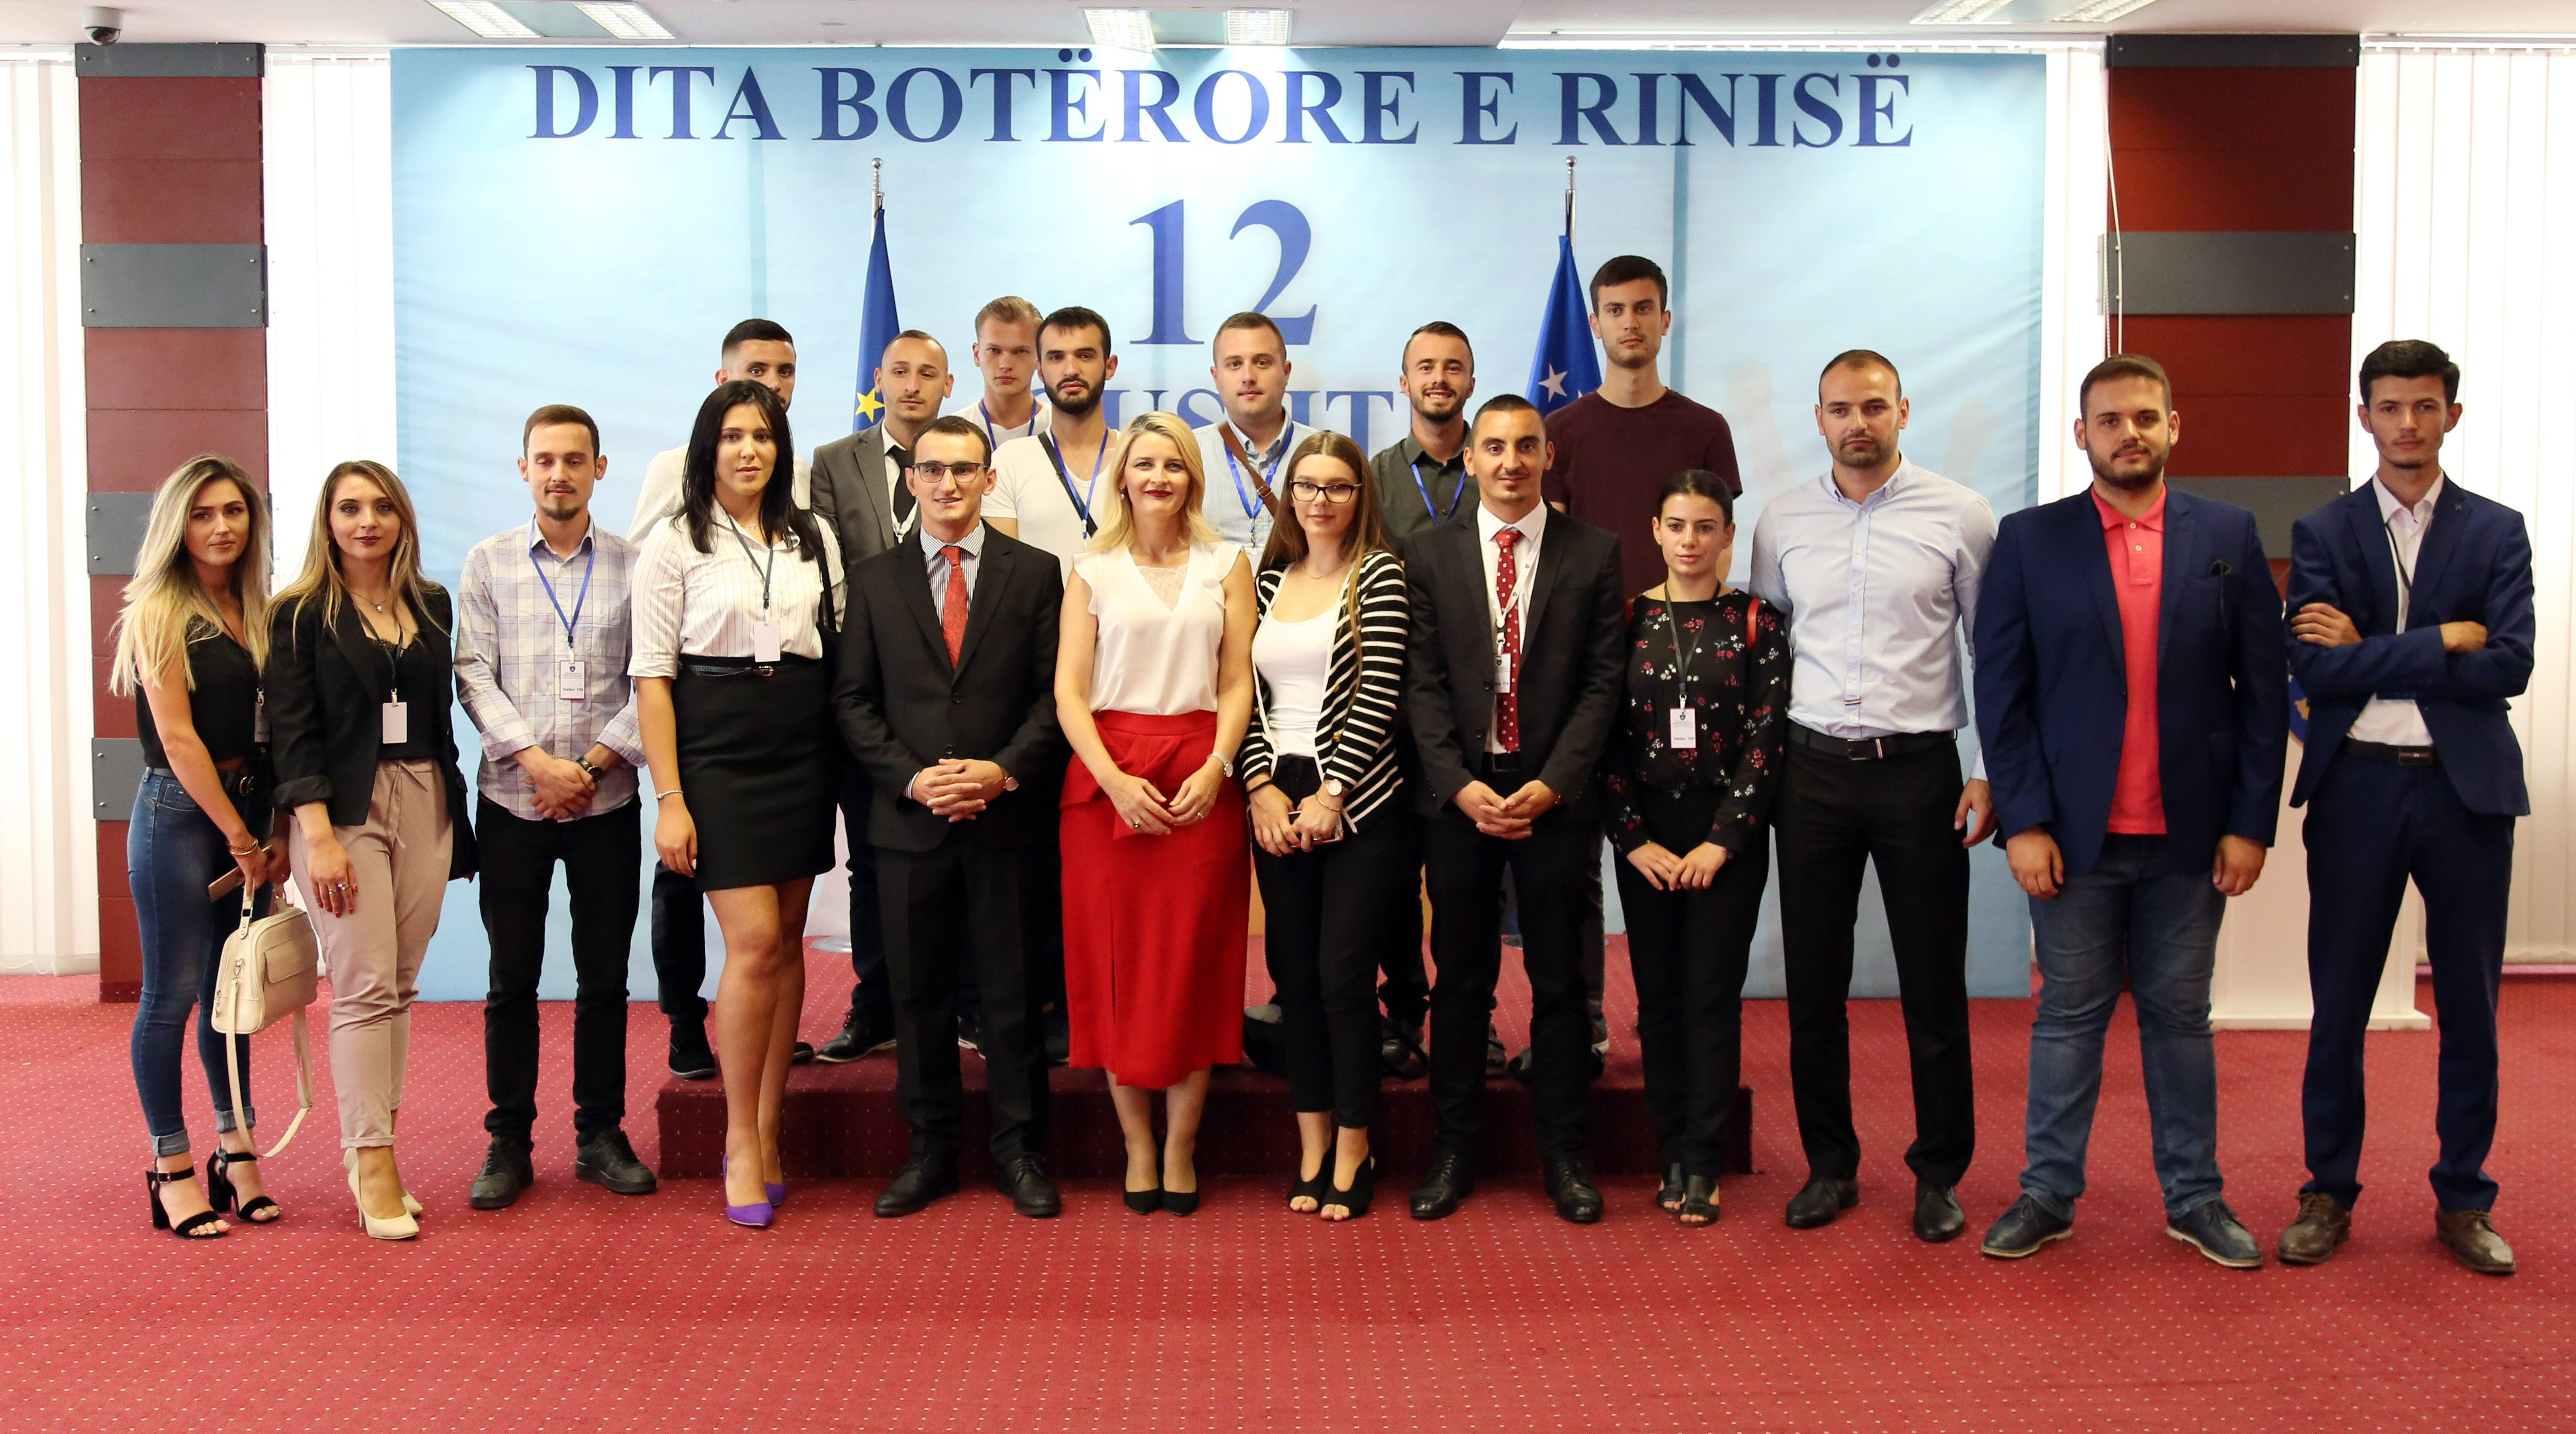 Minister Hoxha: Our youth is gifted and ready to compete in the international labour market